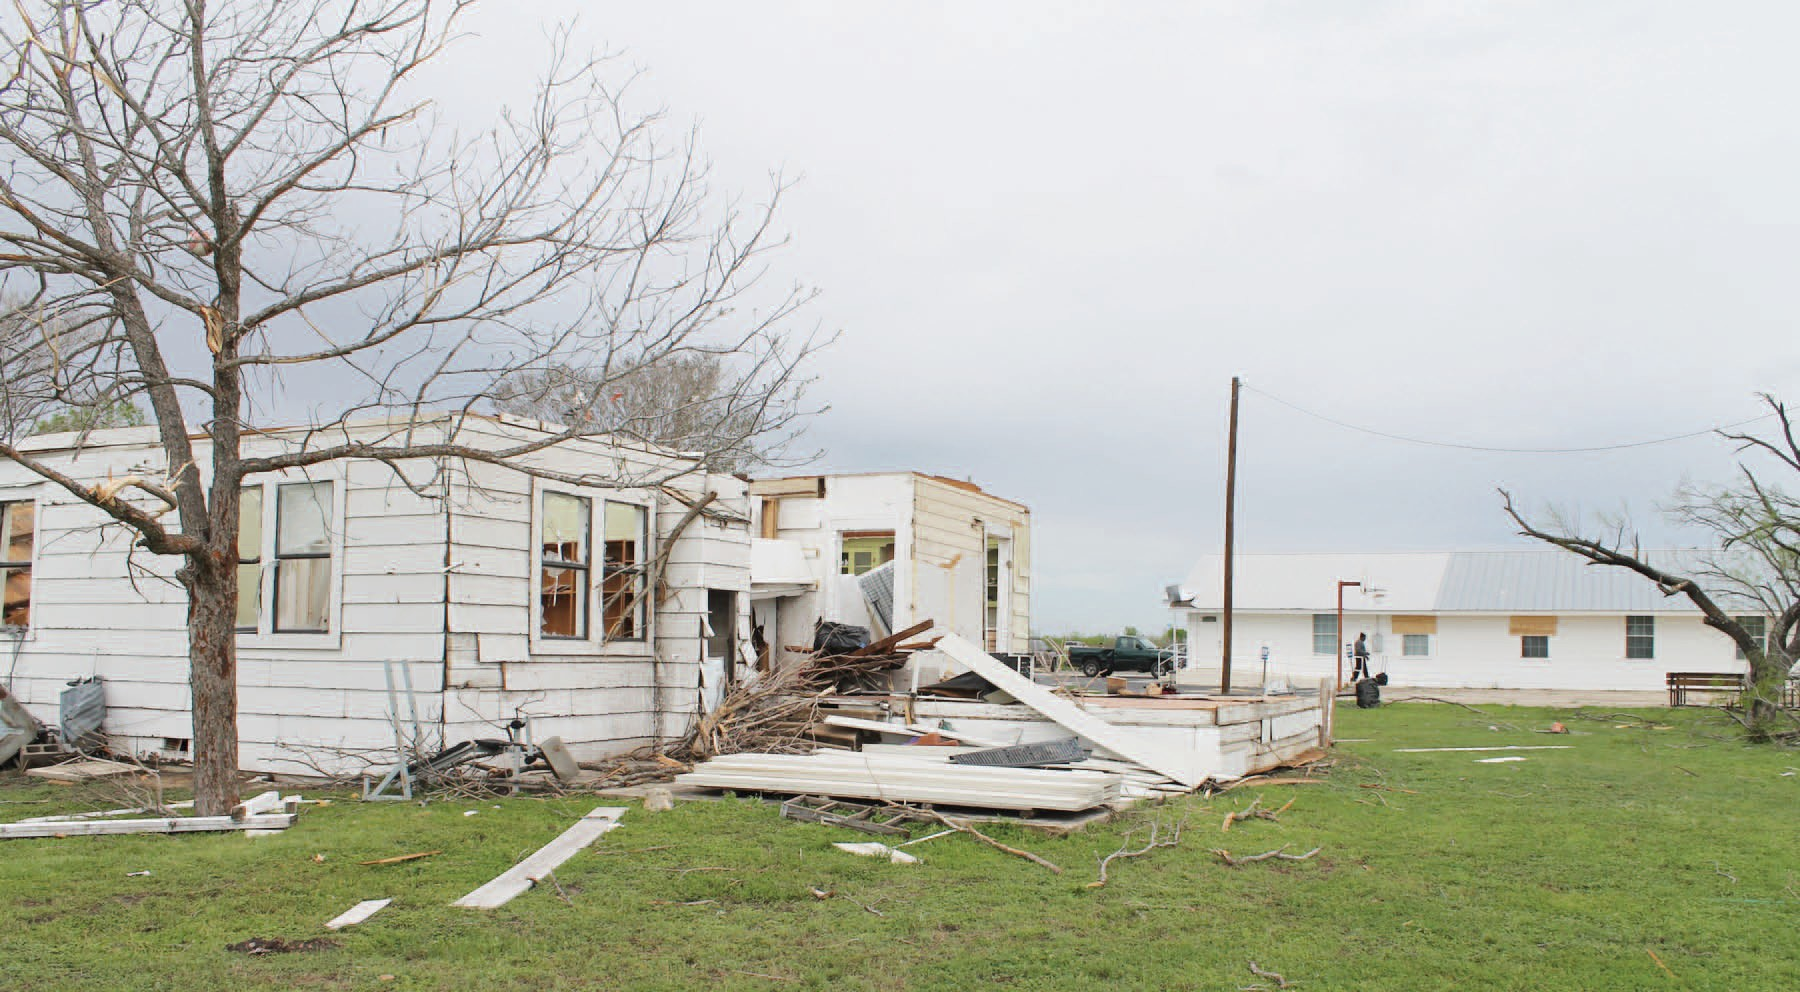 Country Baptist Church located on the corner of FM 471 and FM 463 out of Natalia suffered a total loss of this 4-bedroom home that was used as a Bible Study and Recreation area.